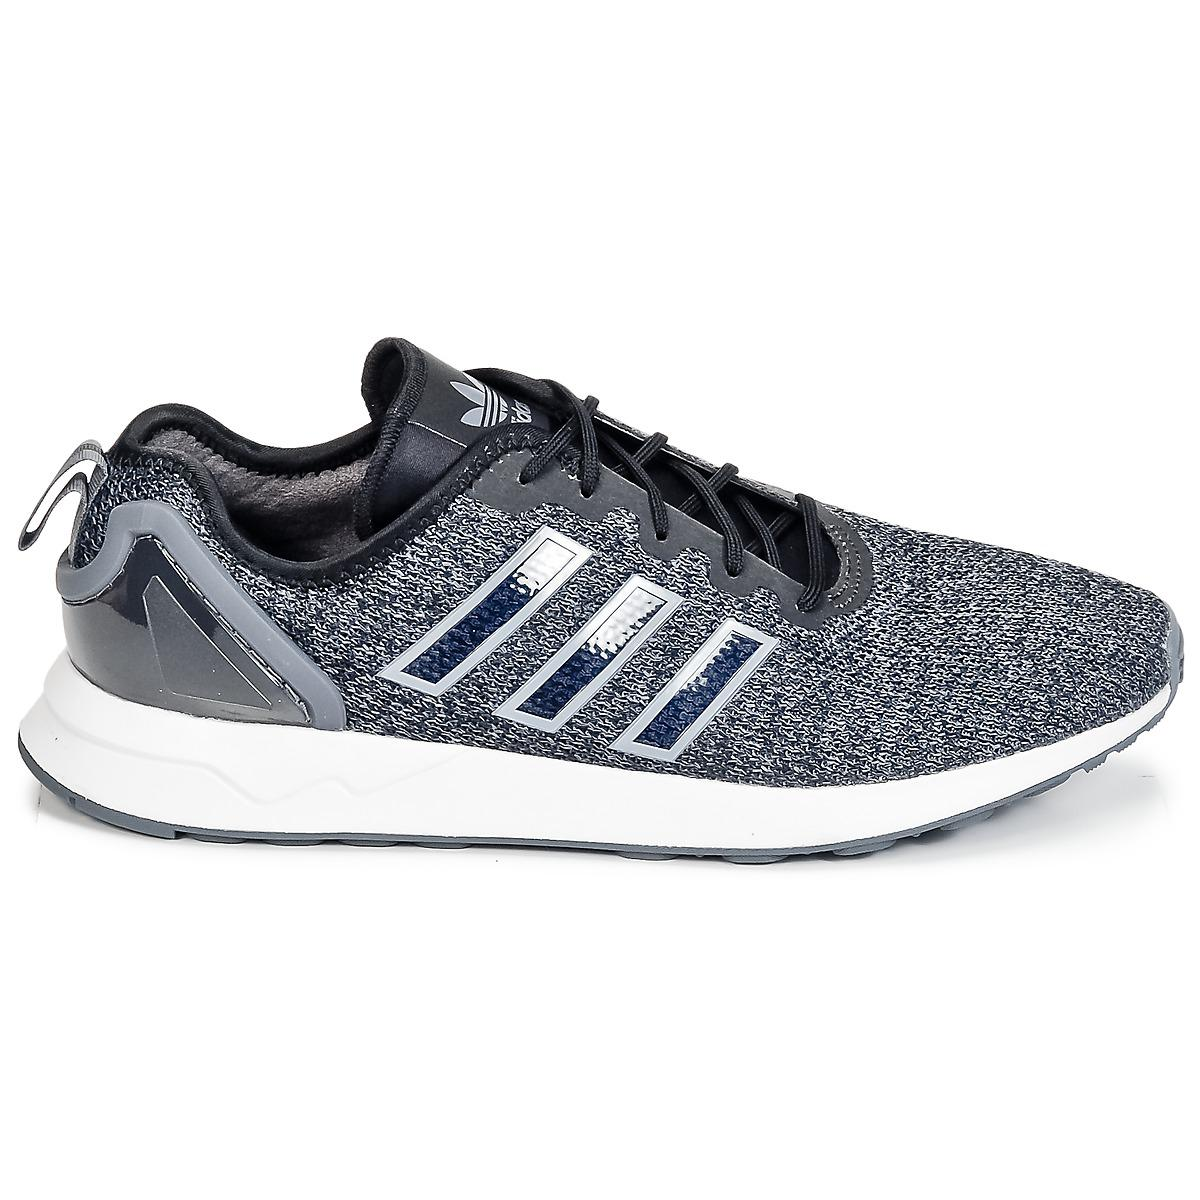 9c6370efa Adidas - Gray Zx Flux Adv Men s Shoes (trainers) In Grey for Men -. View  fullscreen